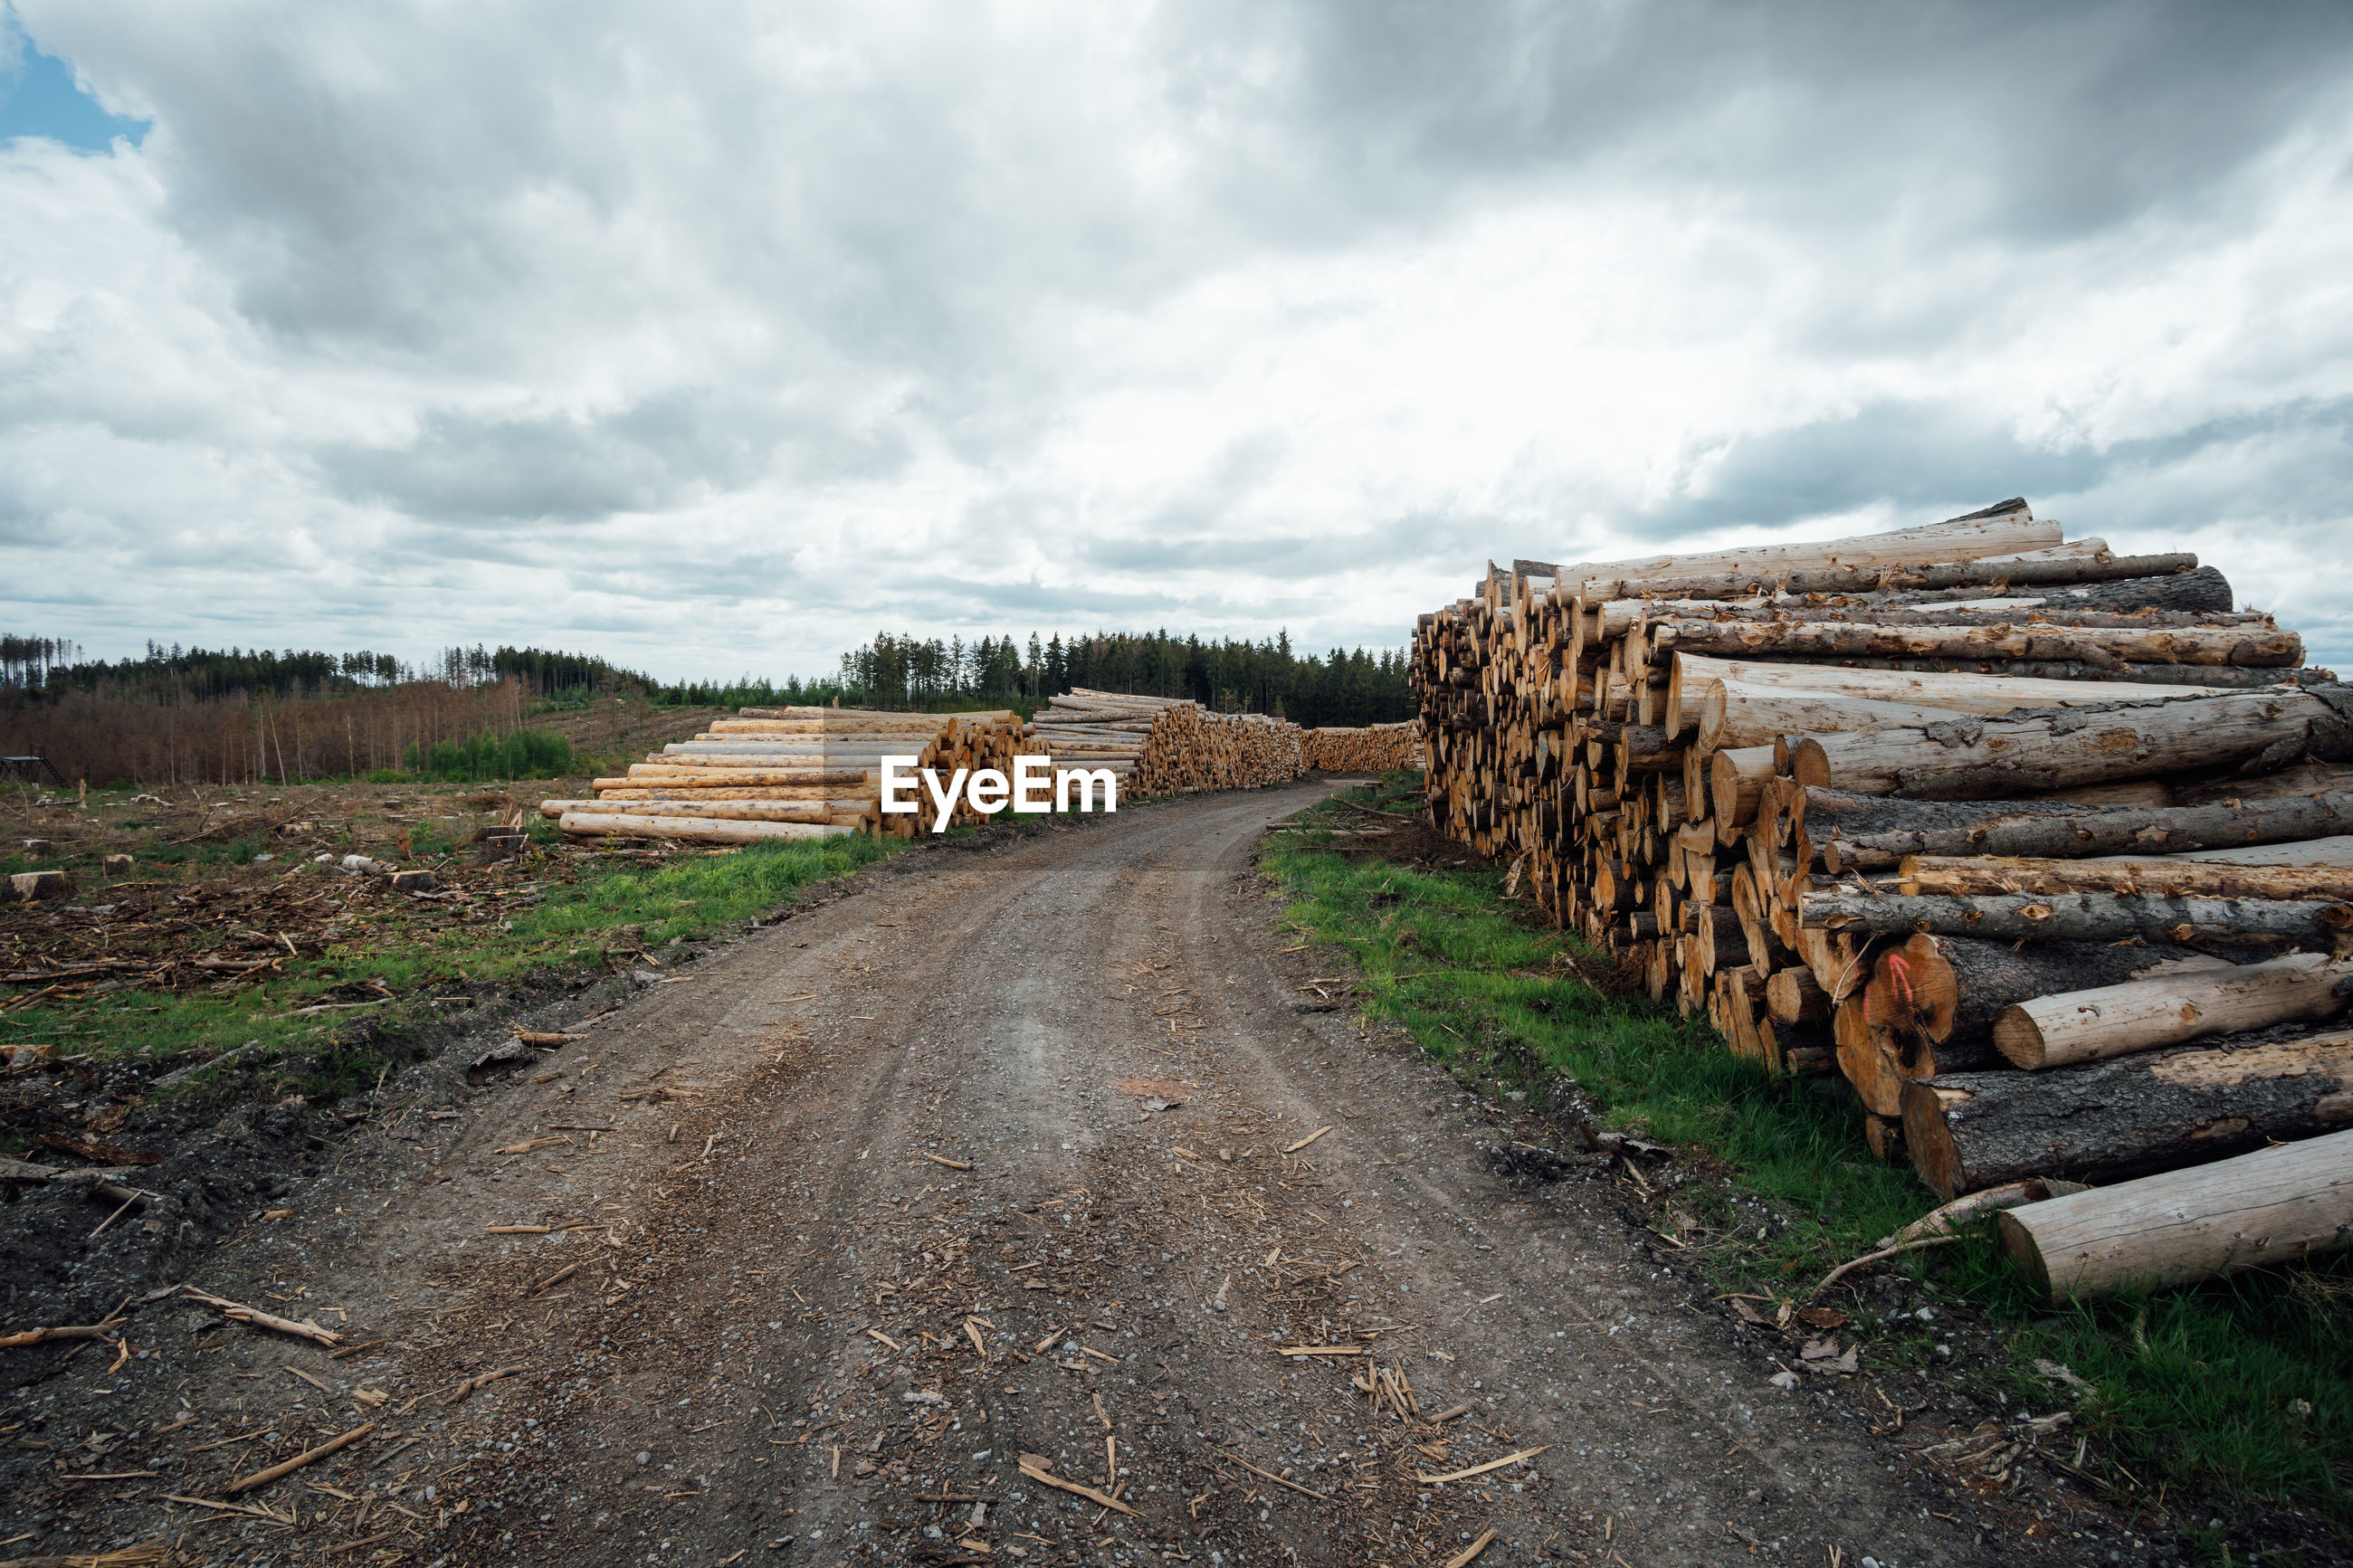 cloud, rural area, sky, road, environment, timber, landscape, nature, tree, logging, wood, log, deforestation, lumber industry, environmental issues, transportation, land, firewood, no people, soil, forest, track, transport, plant, outdoors, the way forward, infrastructure, rural scene, scenics - nature, dirt road, fossil fuel, day, environmental damage, non-urban scene, industry, rock, dirt, overcast